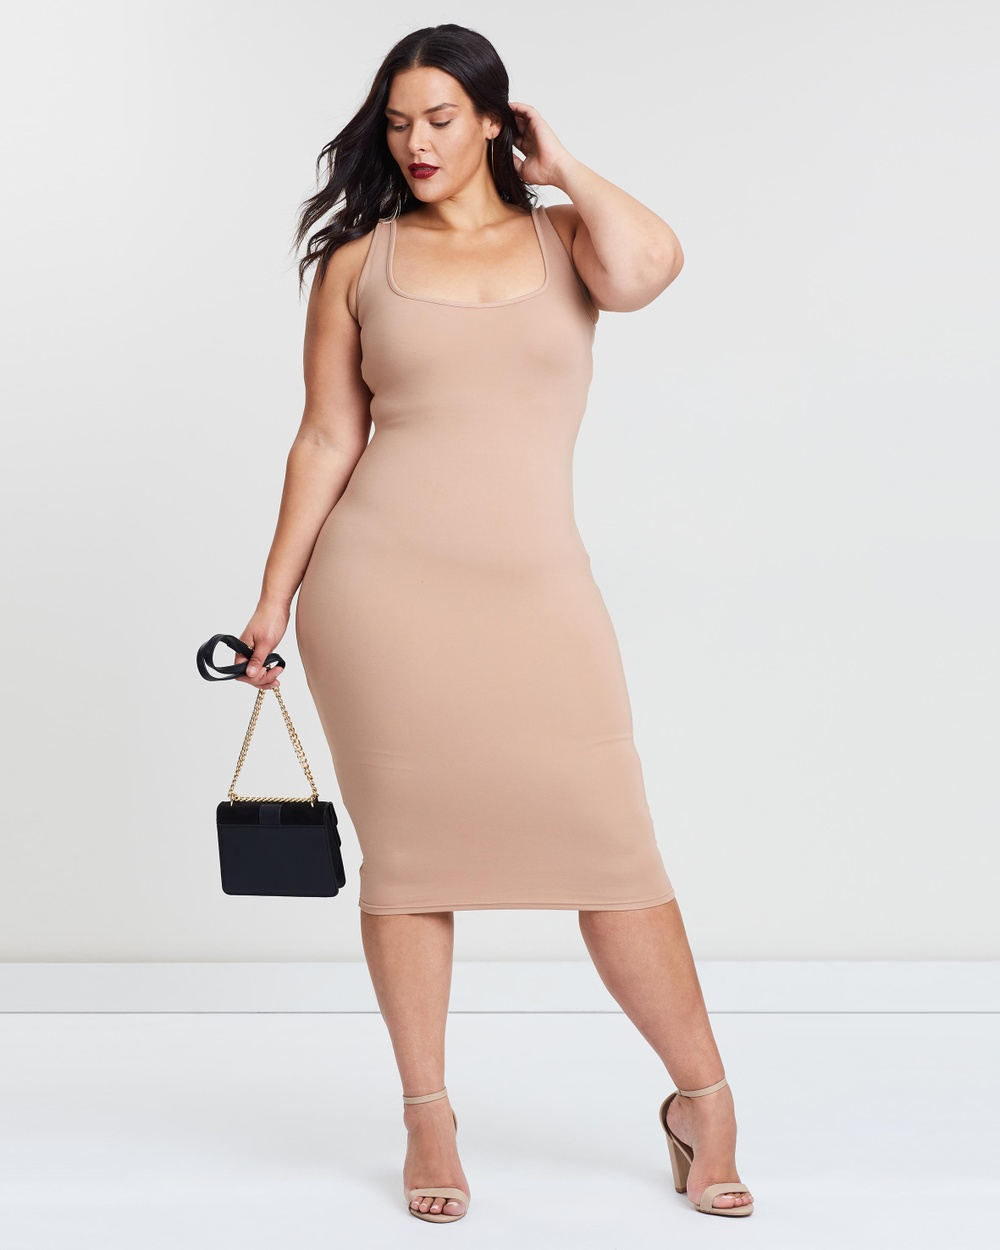 Photo of Atmos & Here Curvy Nude Keeks Body-Con Dress - buy Atmos & Here Curvy dresses on sale online